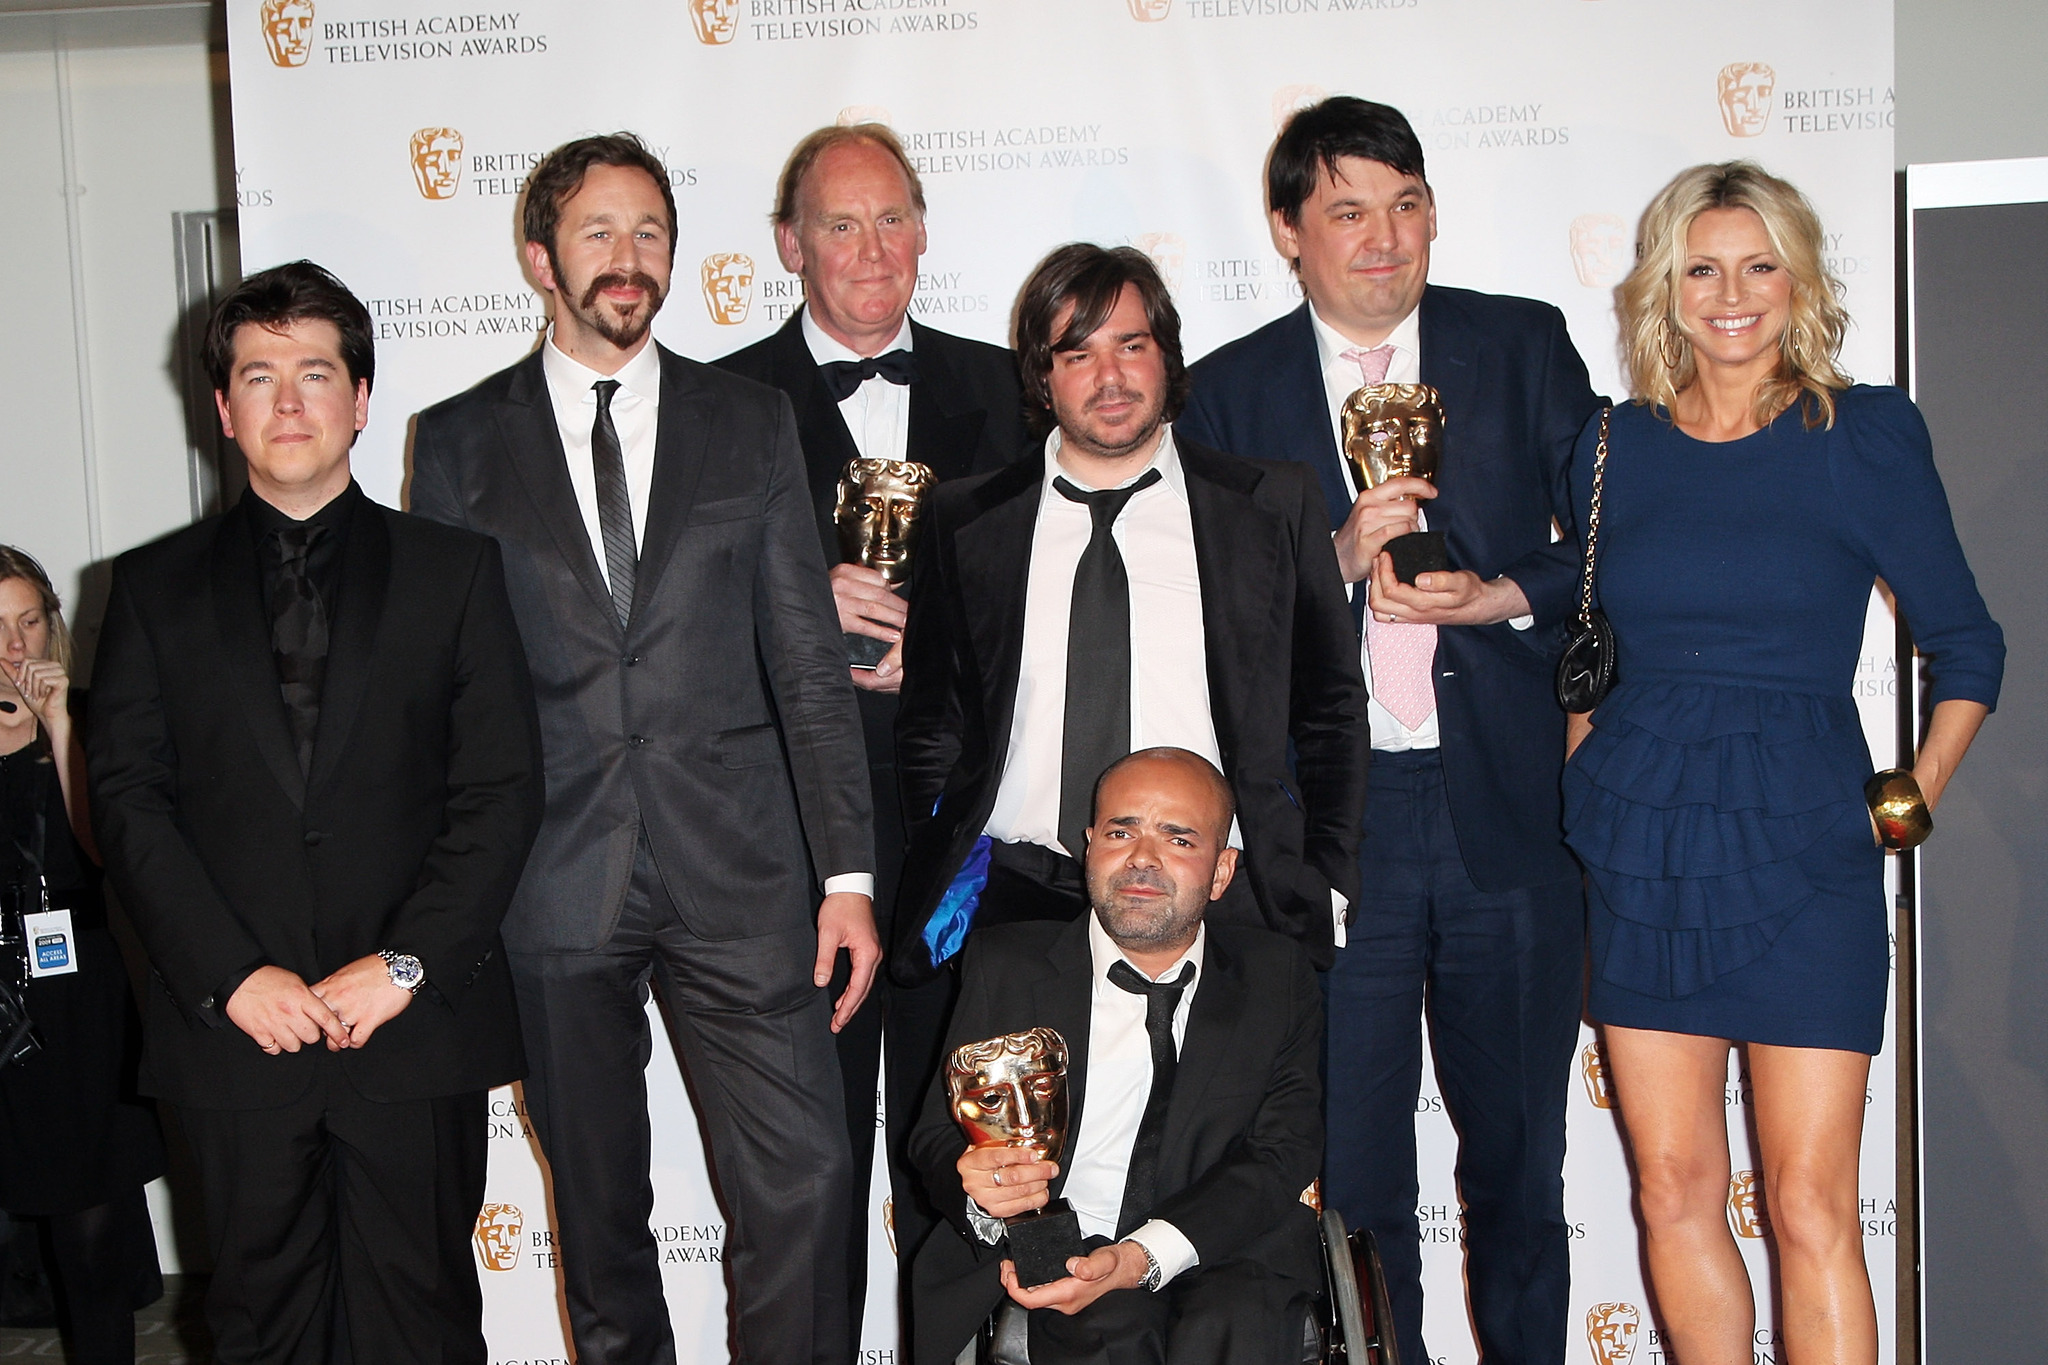 Richard Boden, Tess Daly, Graham Linehan, Ash Atalla, Chris O'Dowd, Matt Berry, and Michael McIntyre